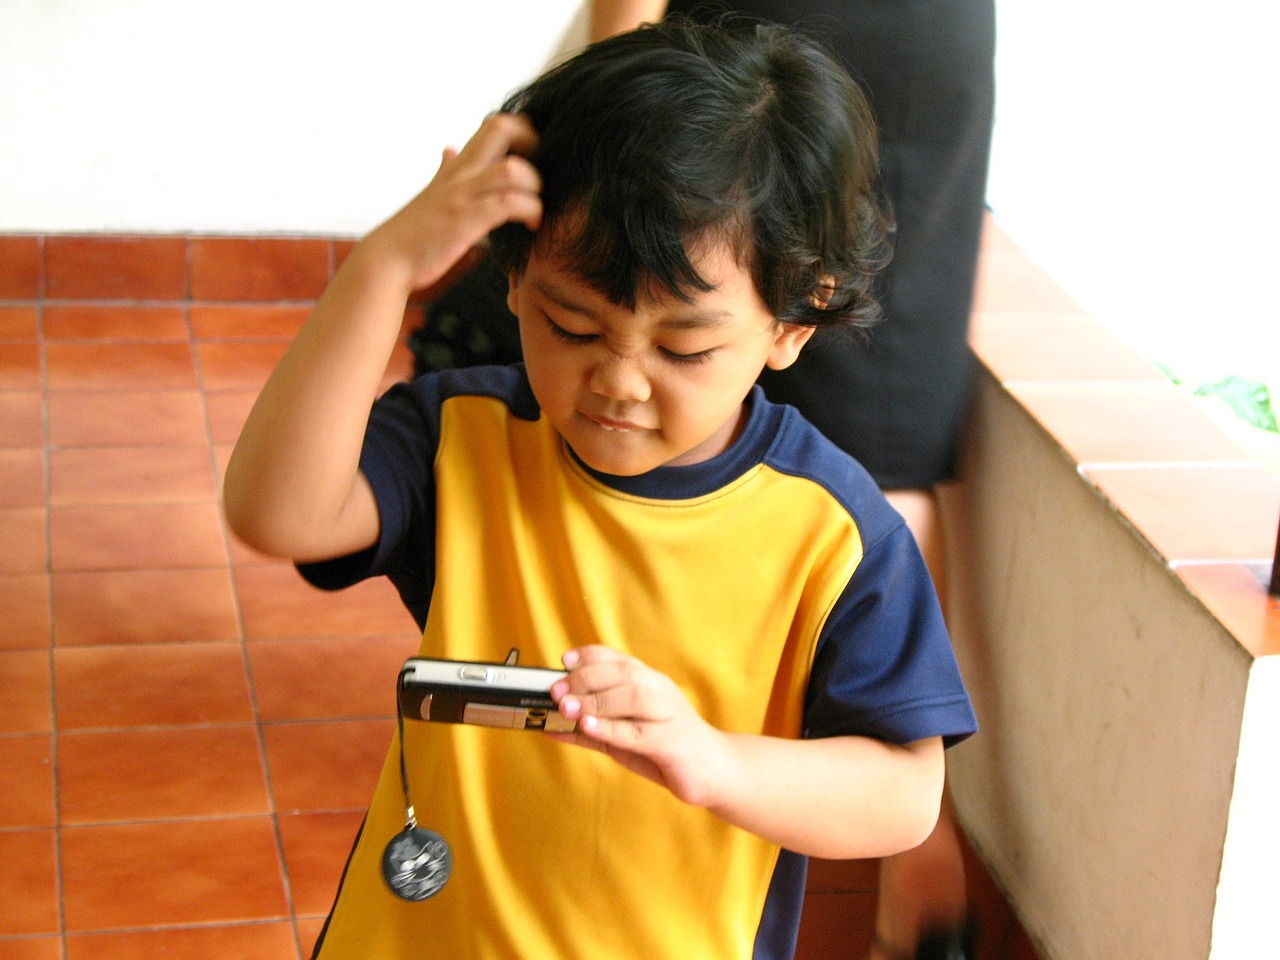 Puzzled toddler looking at phone in hand and scratching head